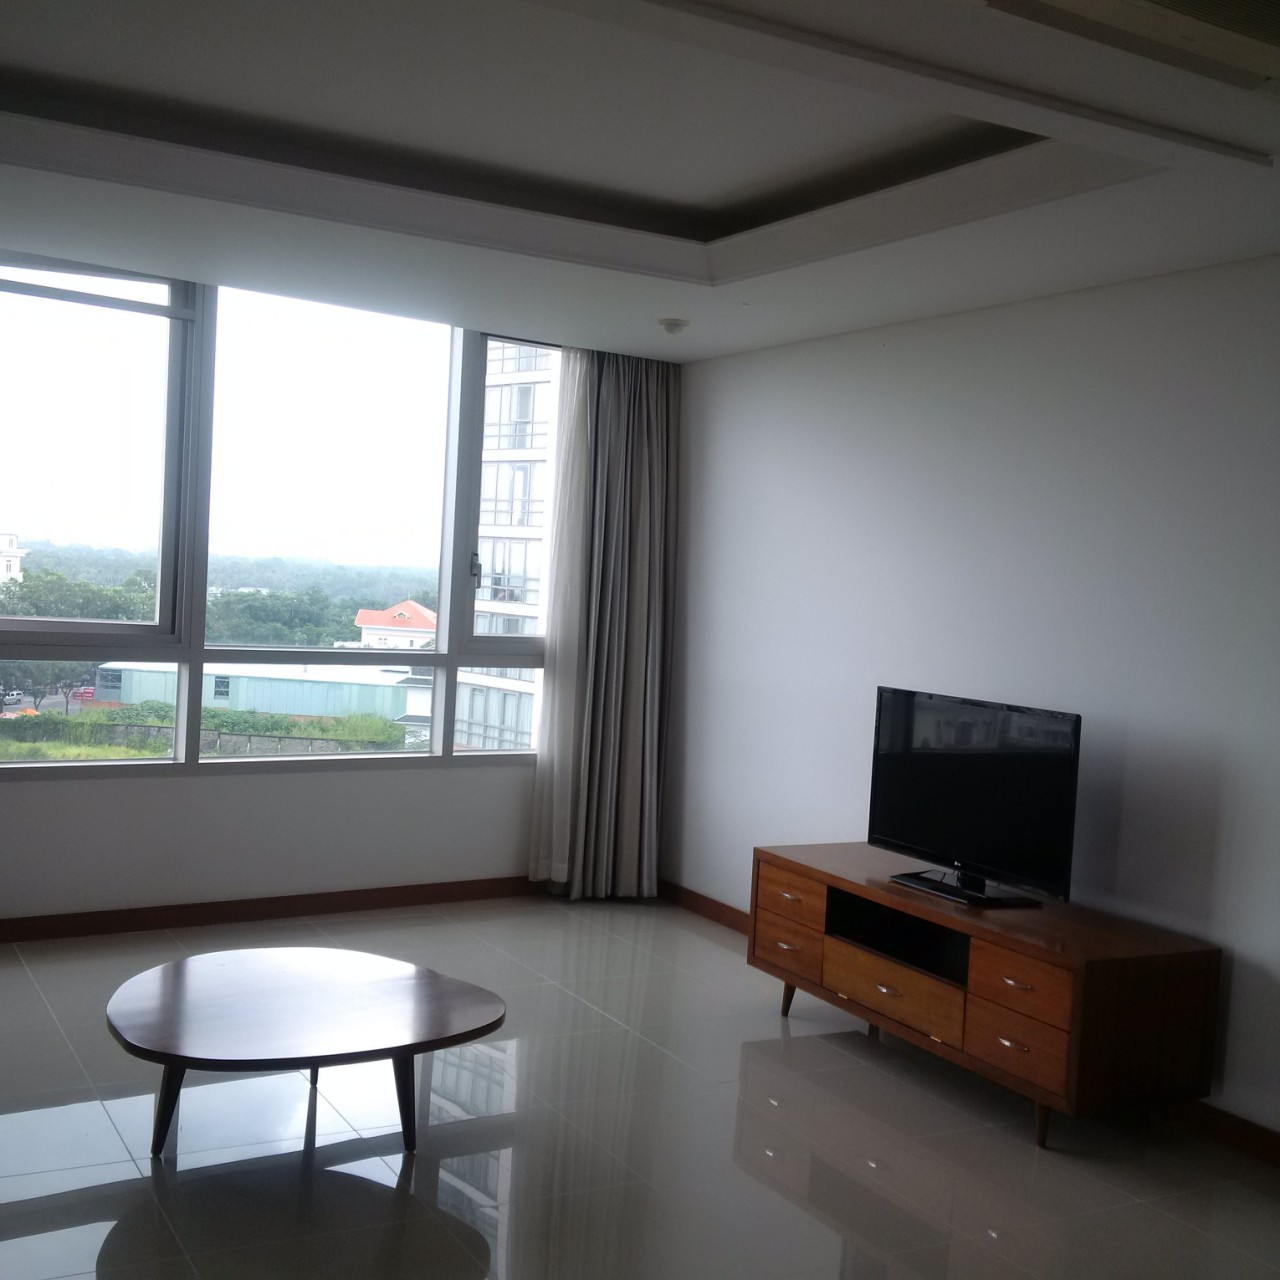 3 bedrooms xii apartment for rent with full furniture